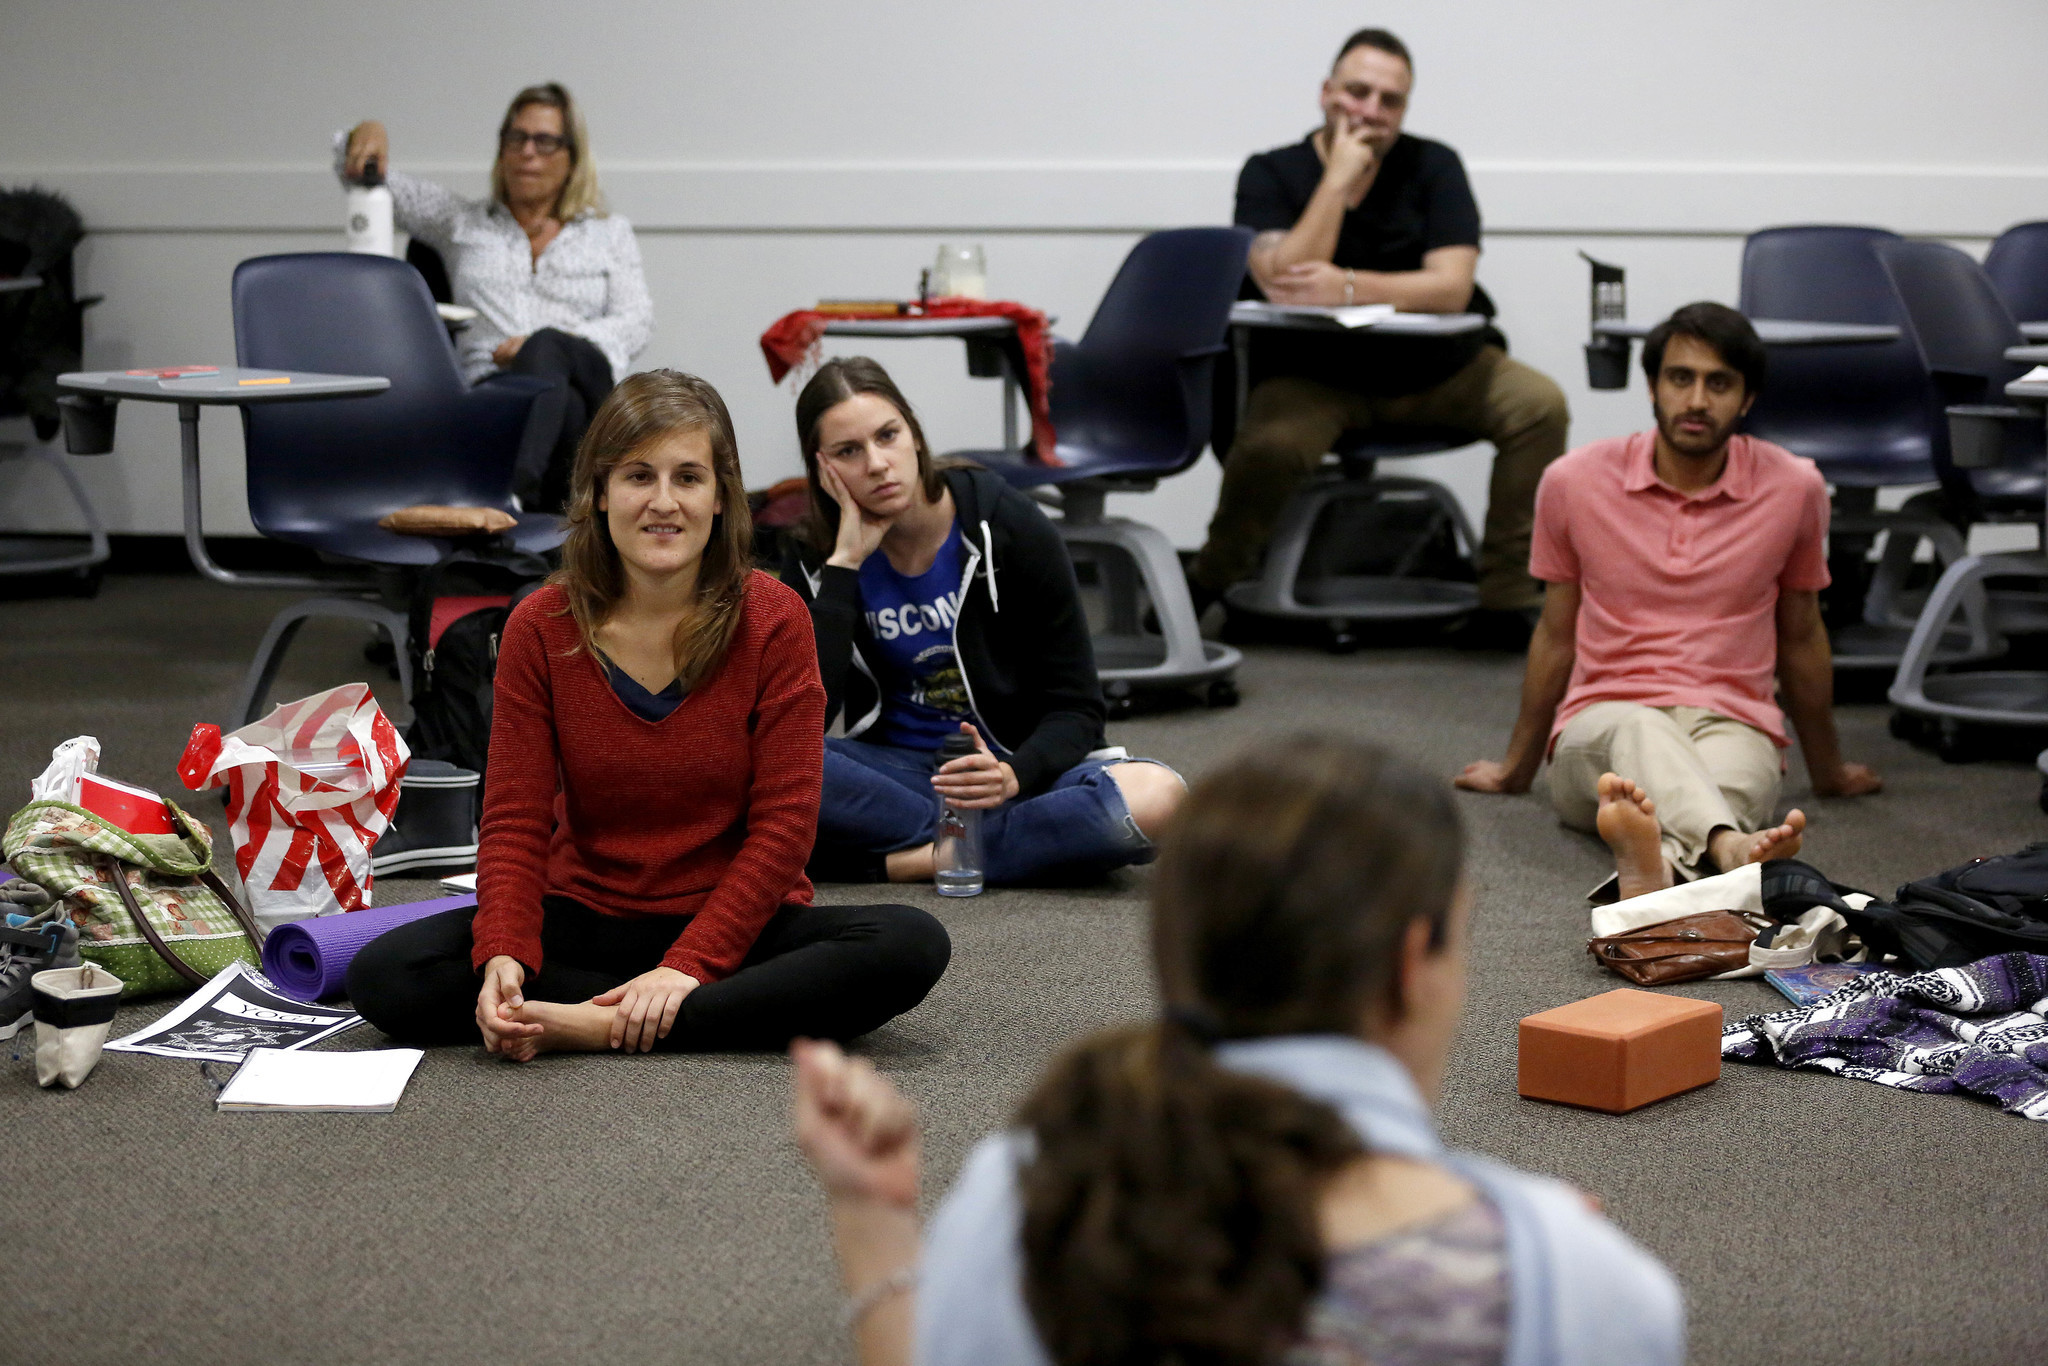 First-year master's degree in yoga students attend a class taught by professor Ana Funes at Loyola Marymount University, in Los Angeles. LMU is the only place in the U.S. you can get a master's degree in yoga studies.